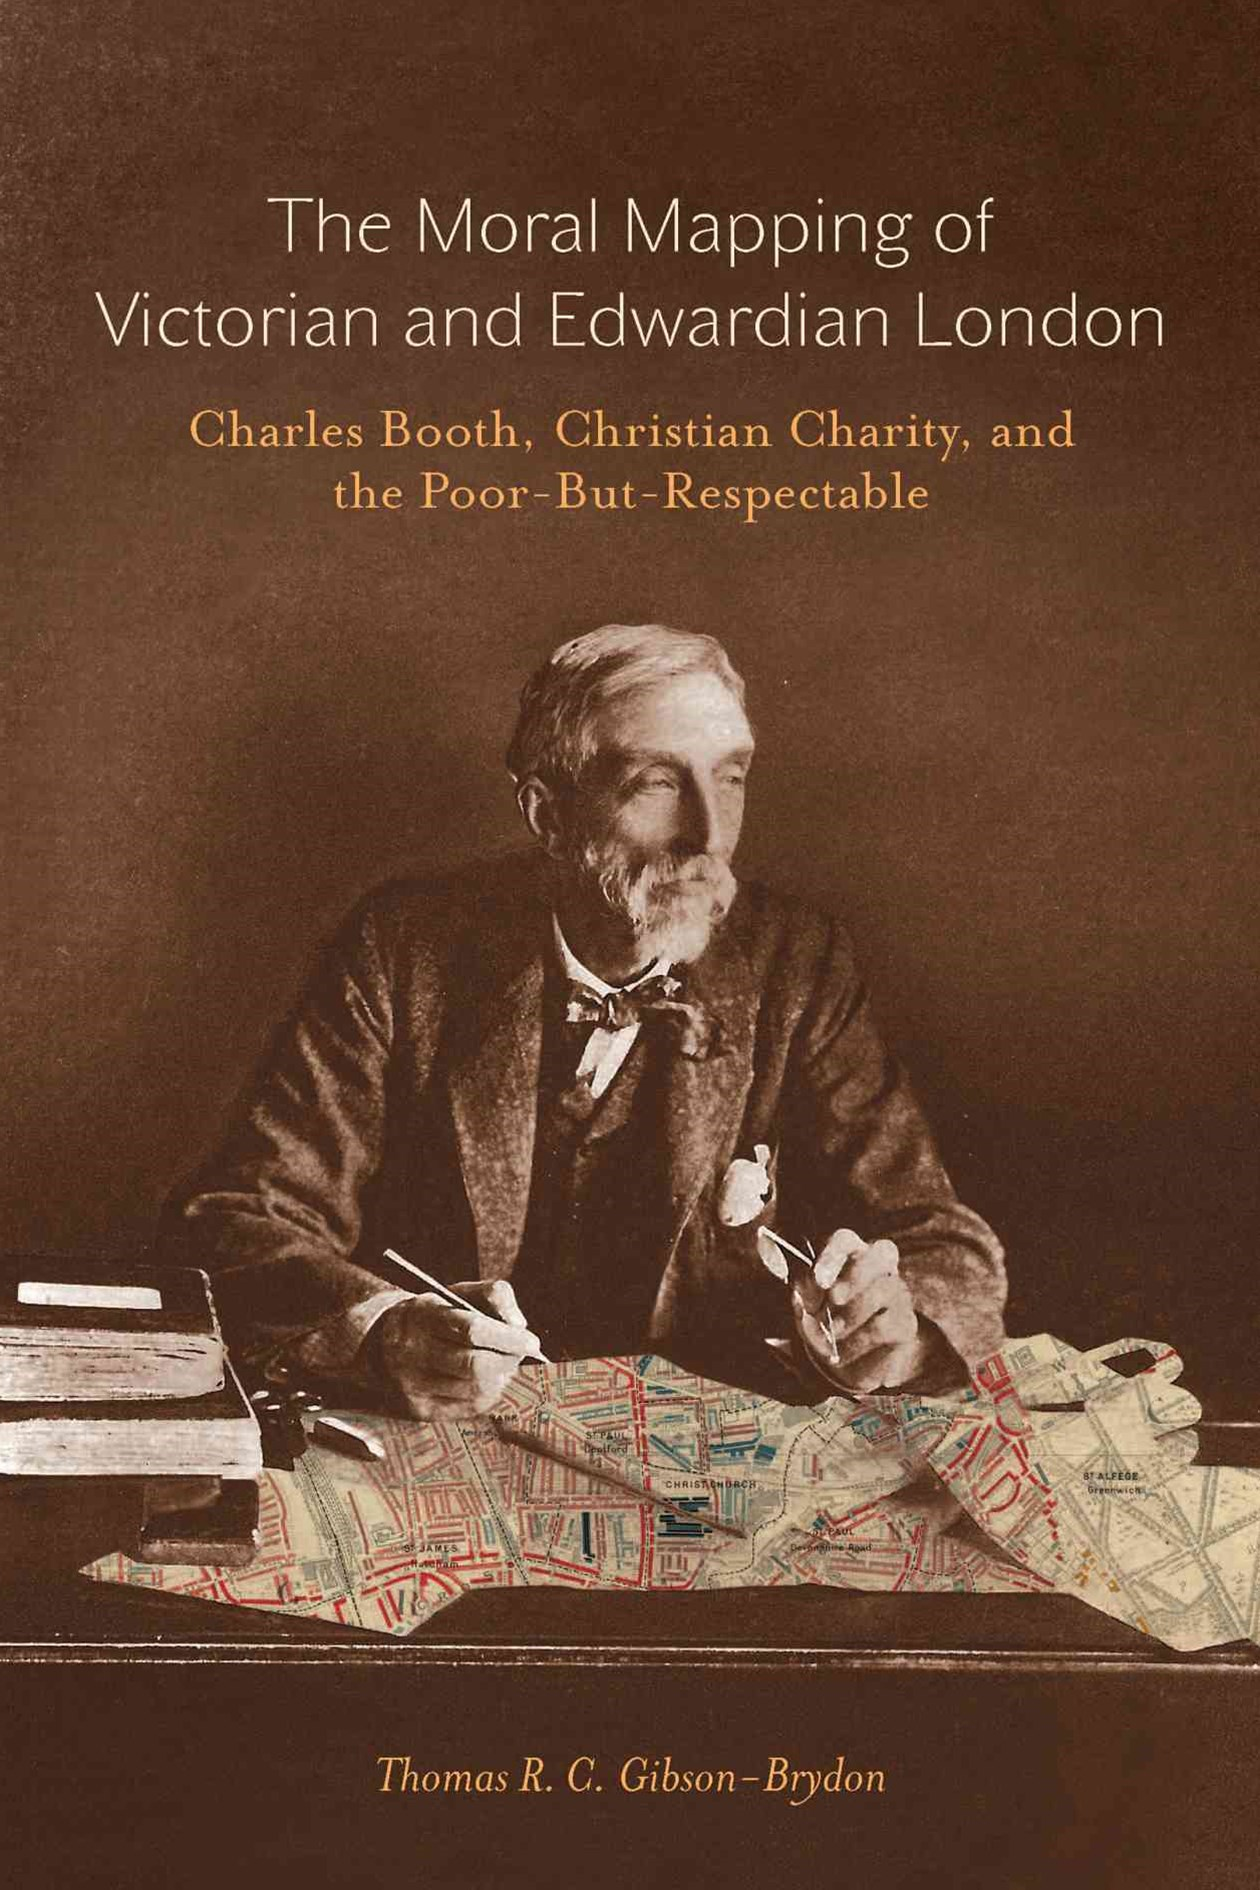 Moral Mapping of Victorian and Edwardian London